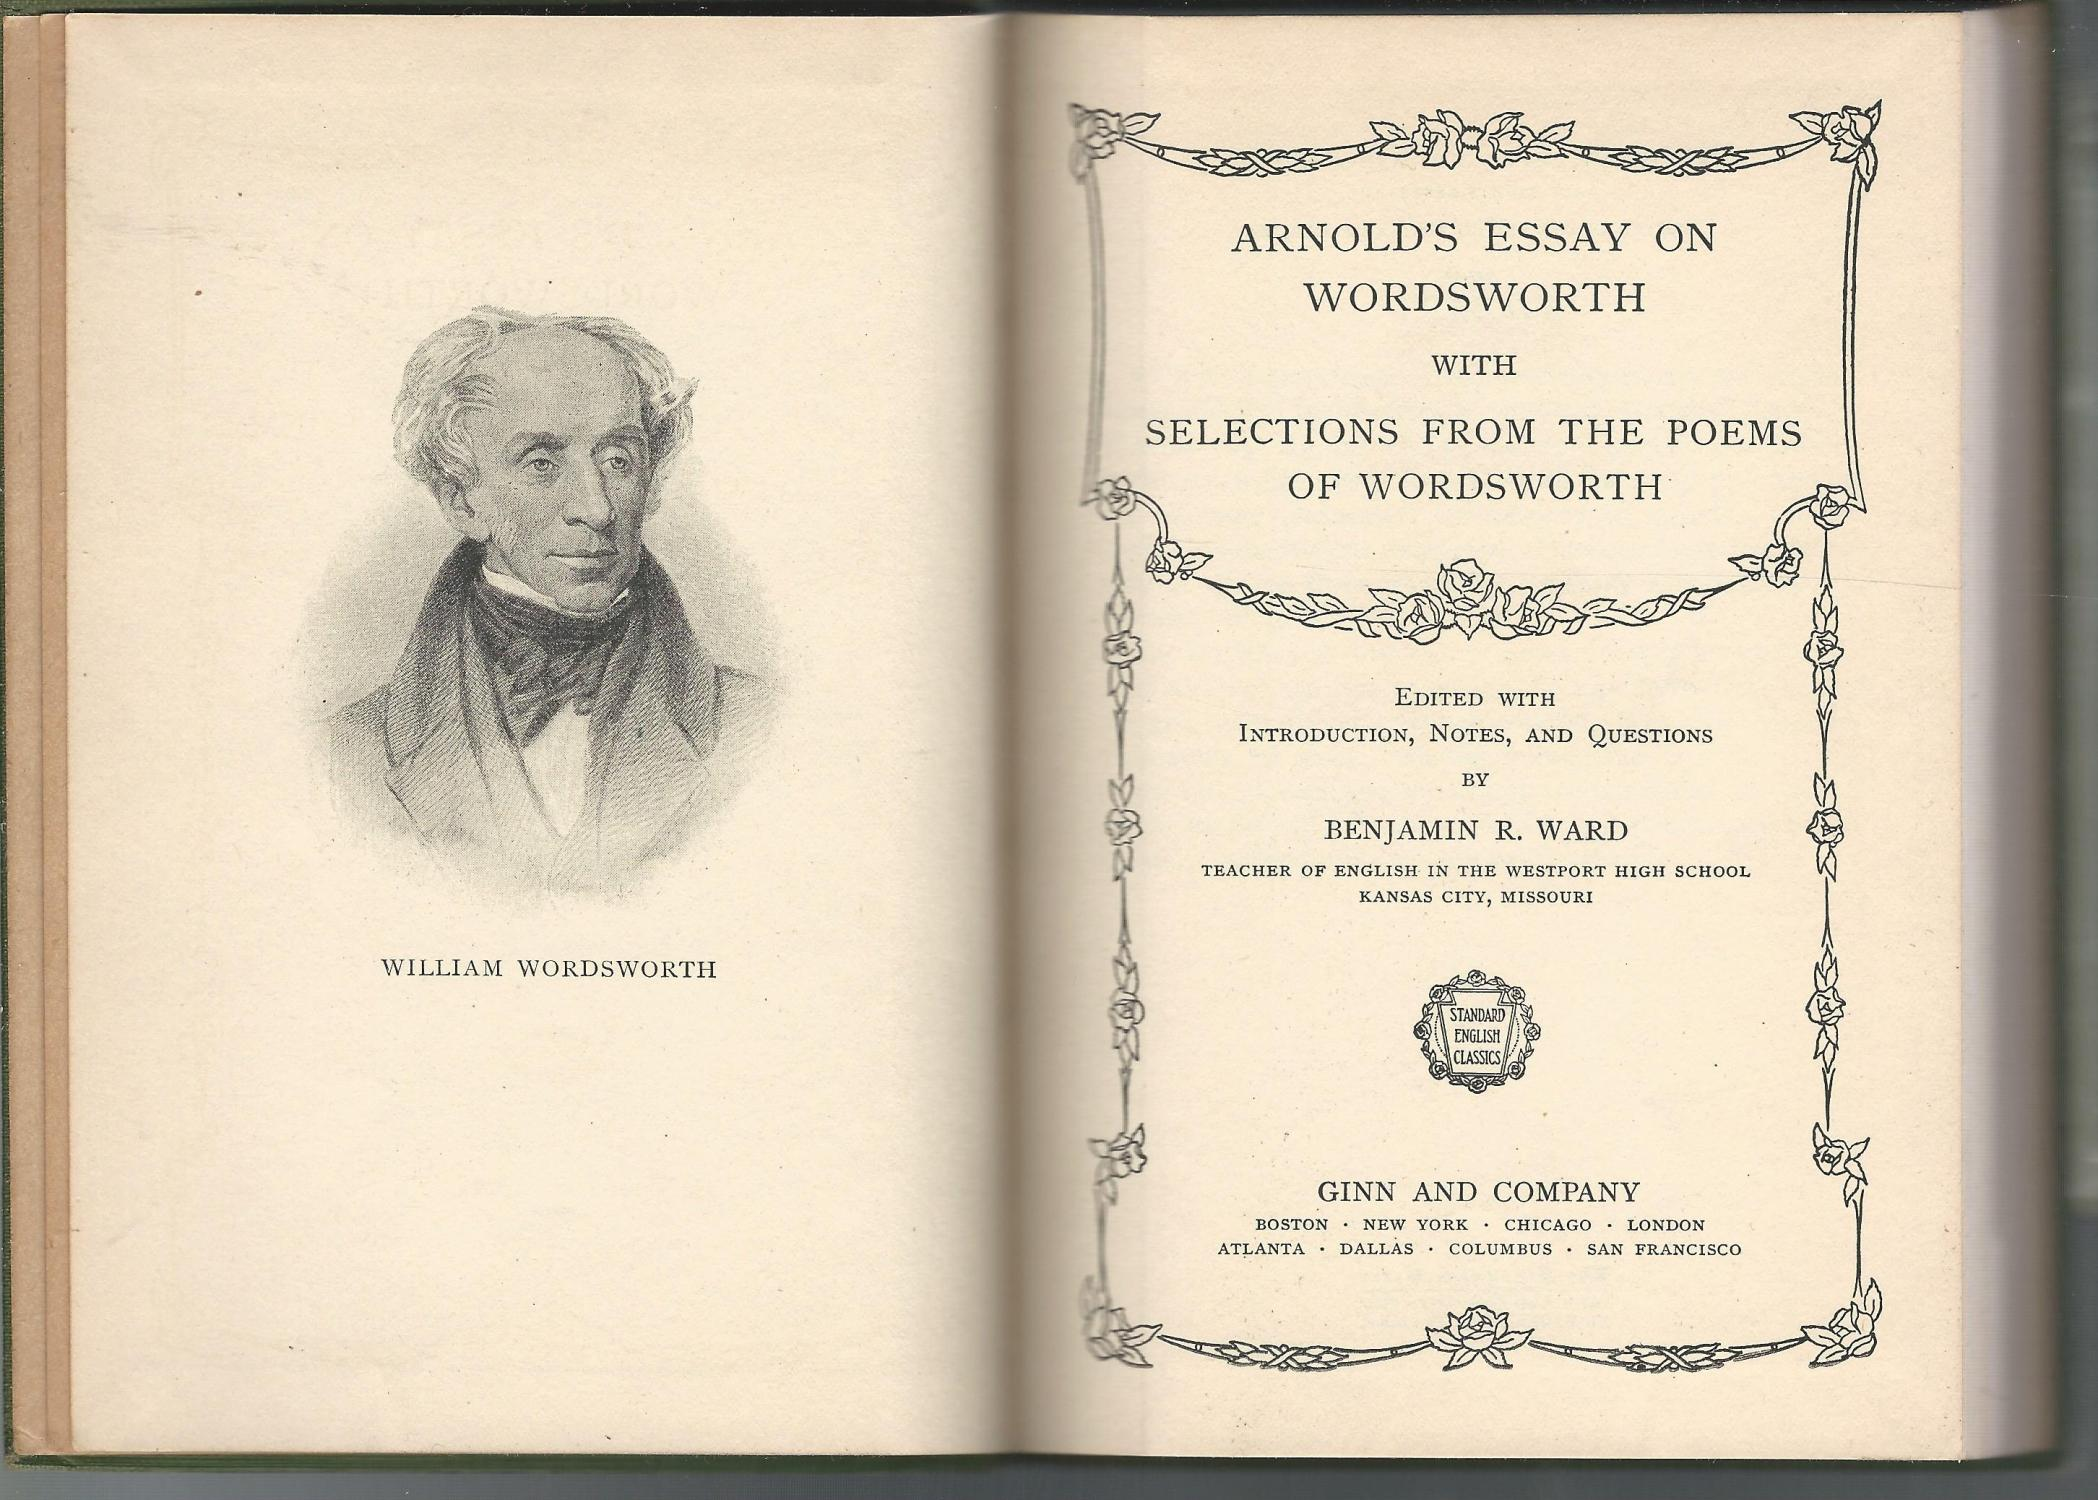 poems of wordsworth by matthew editor arnold abebooks